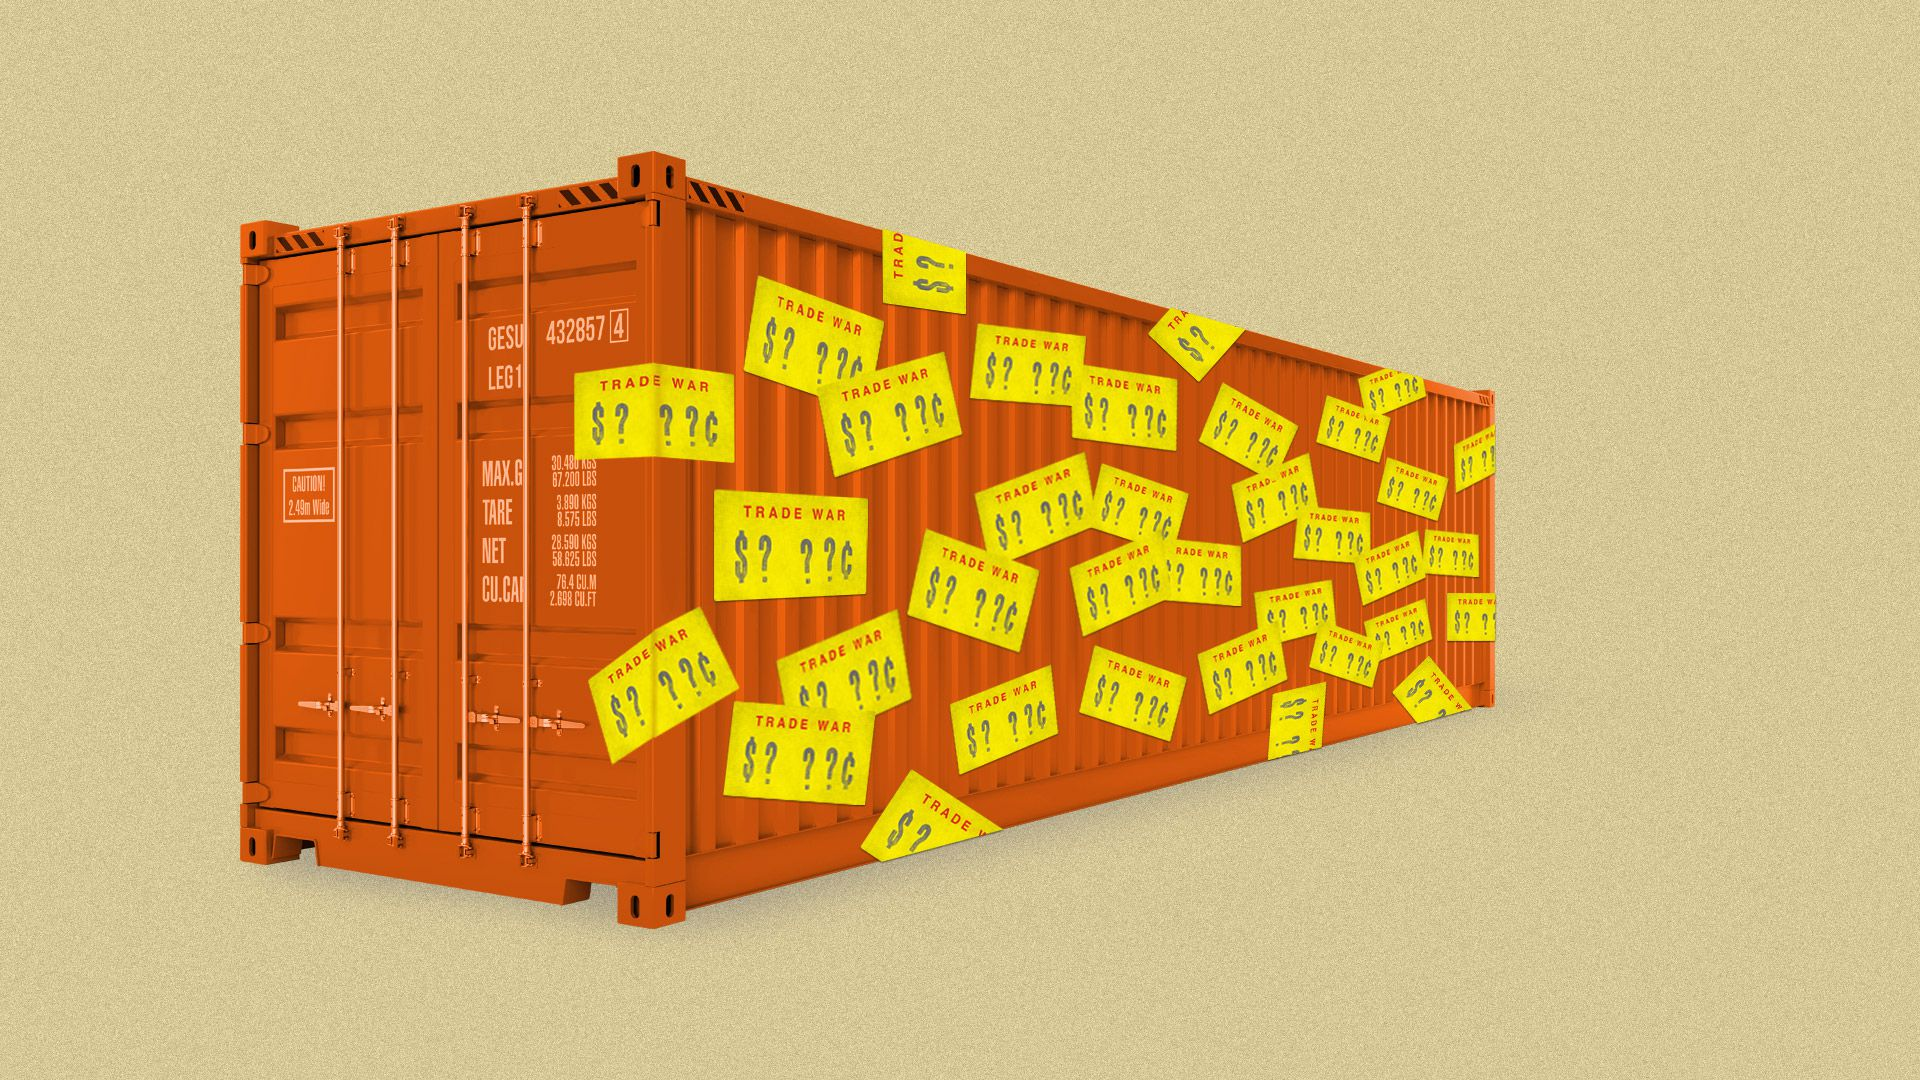 An illustration of a shipping container with price tags all over it.